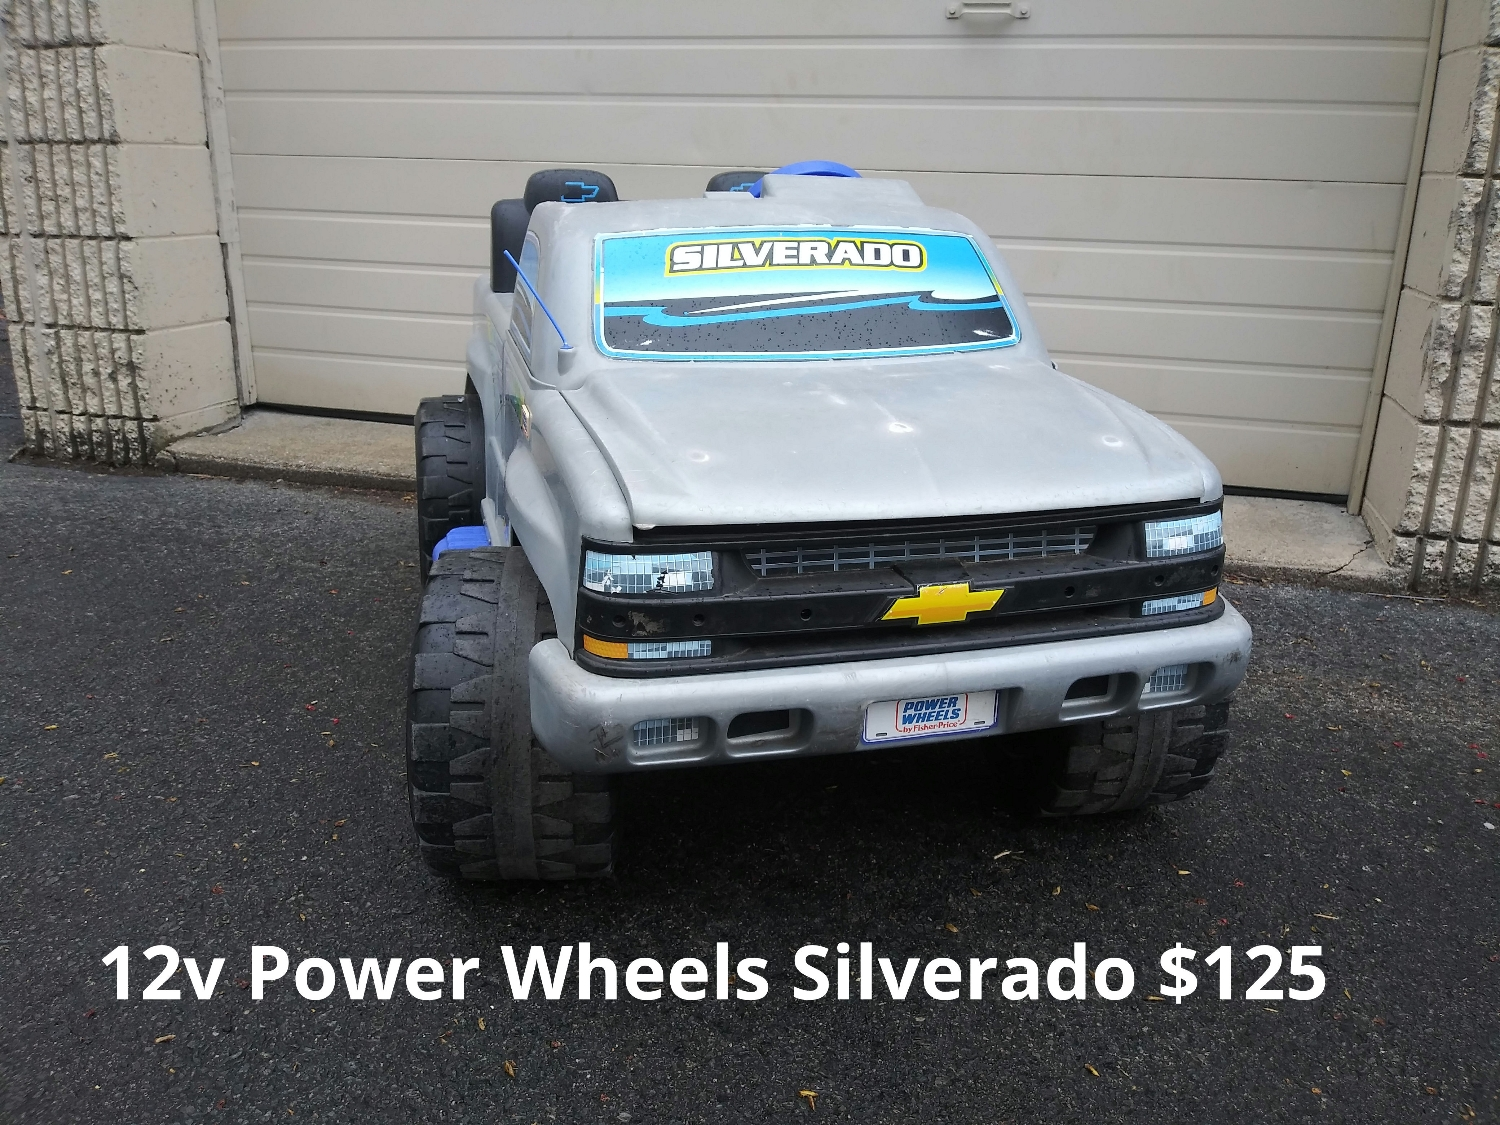 12v Power Wheels Silverado